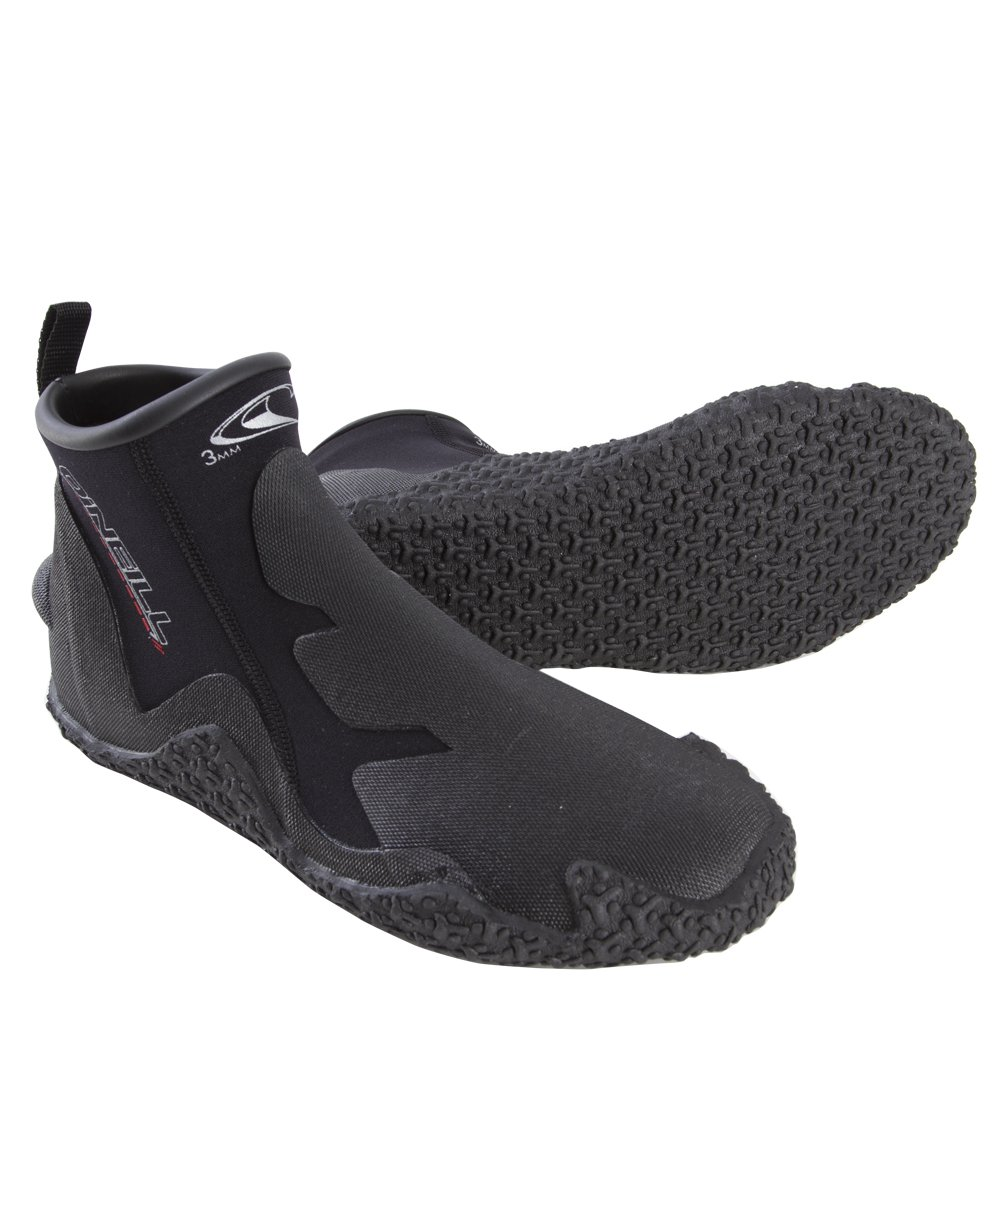 O'Neill Men's Dive Tropical 3mm Booties, Black, 13 by O'Neill Wetsuits